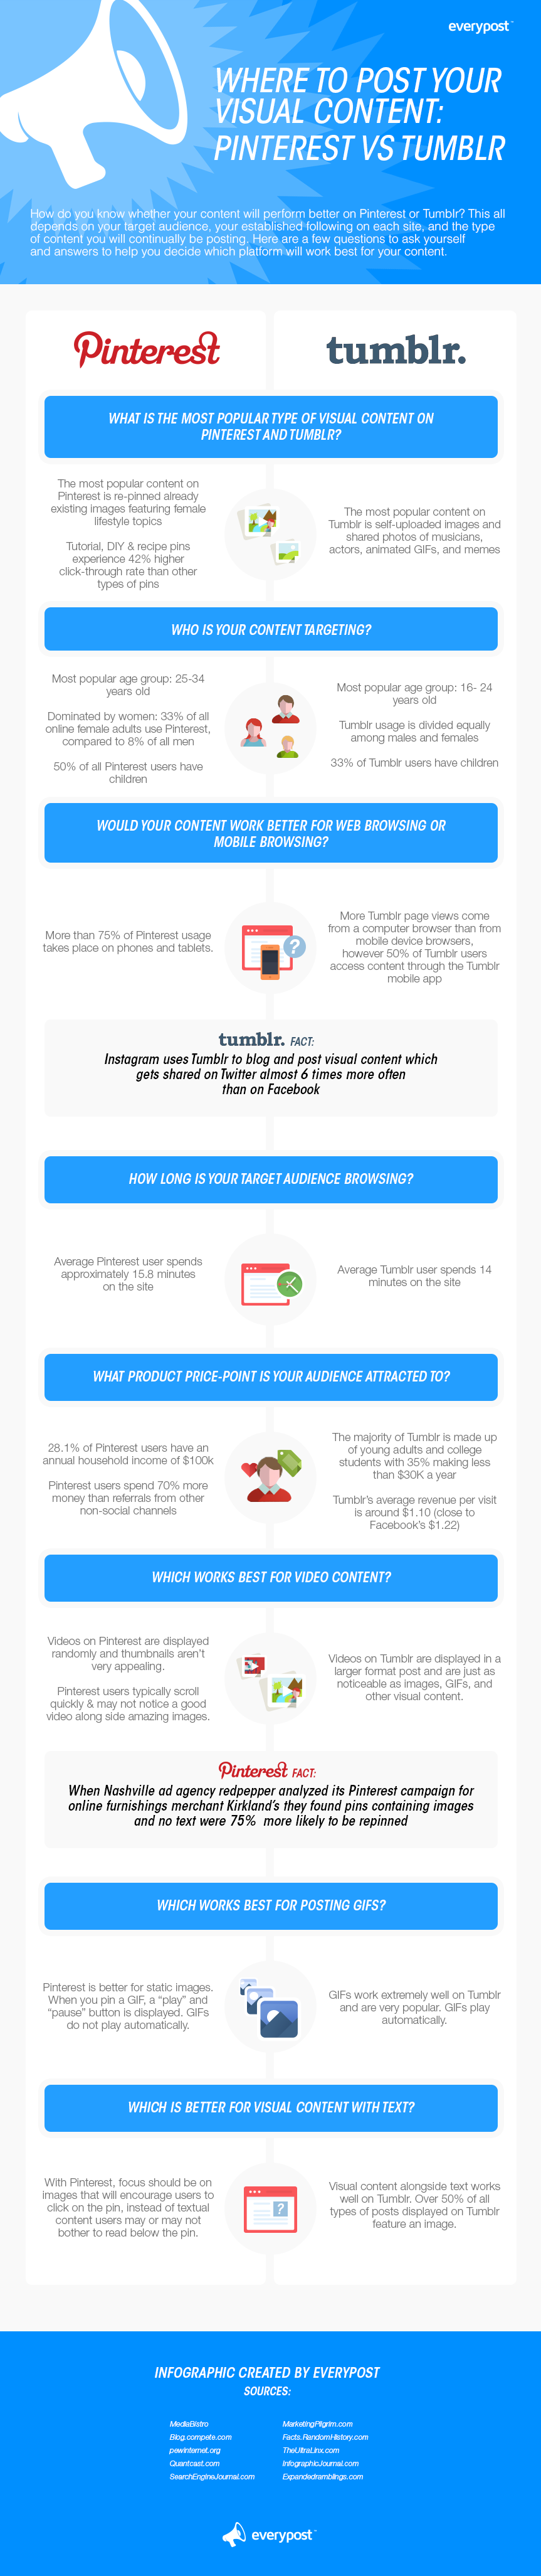 Where to Post your Visual Content: Pinterest vs Tumblr - infographic